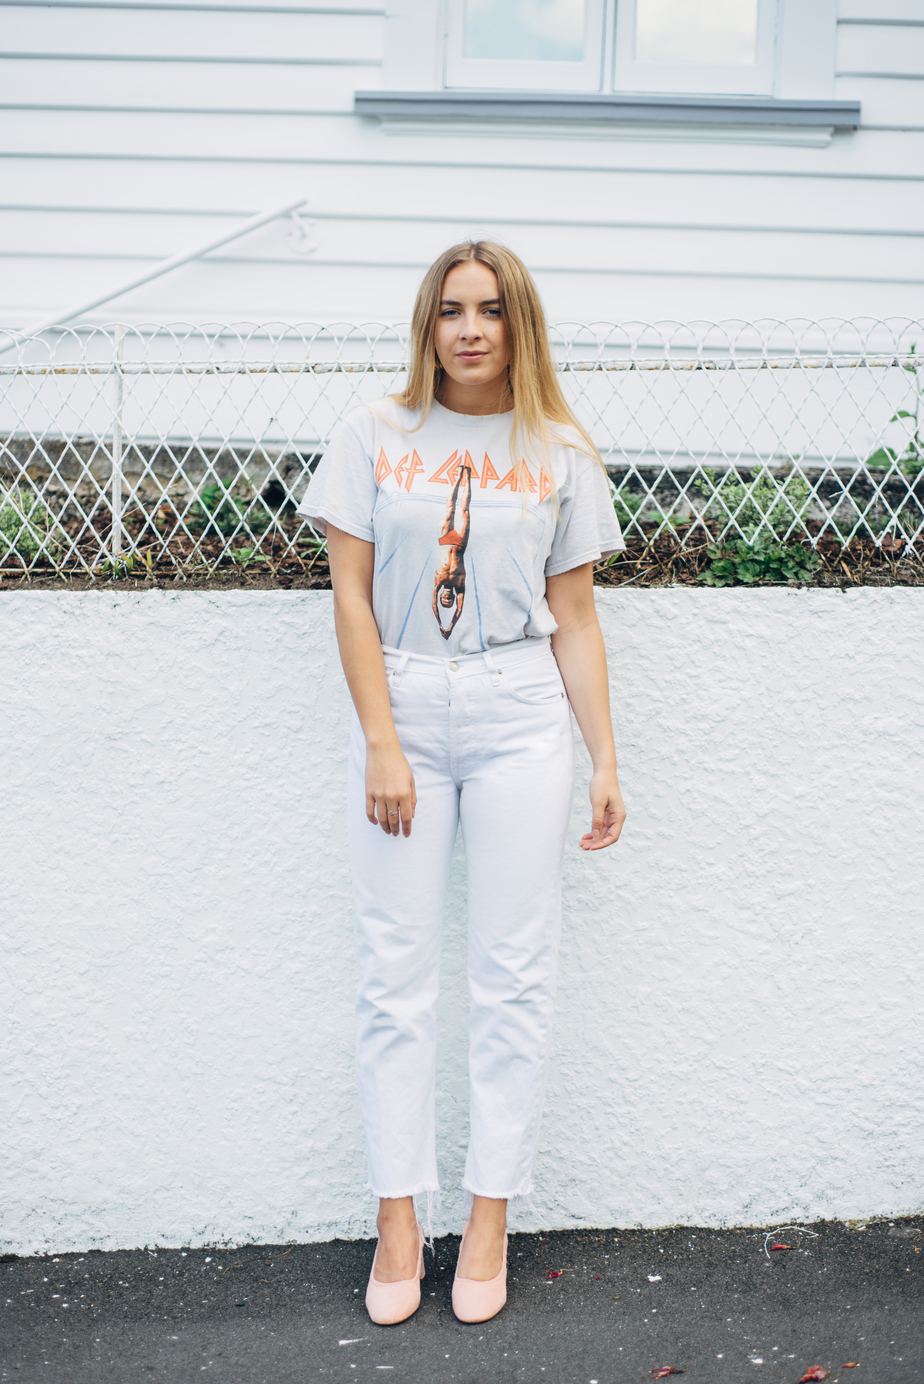 Brandy Melville Tshirt, Vintage Levi Jeans, ASOS Simone Heels and RUBY Earrings   New Zealand Fashion Blogger   Stolen Inspiration